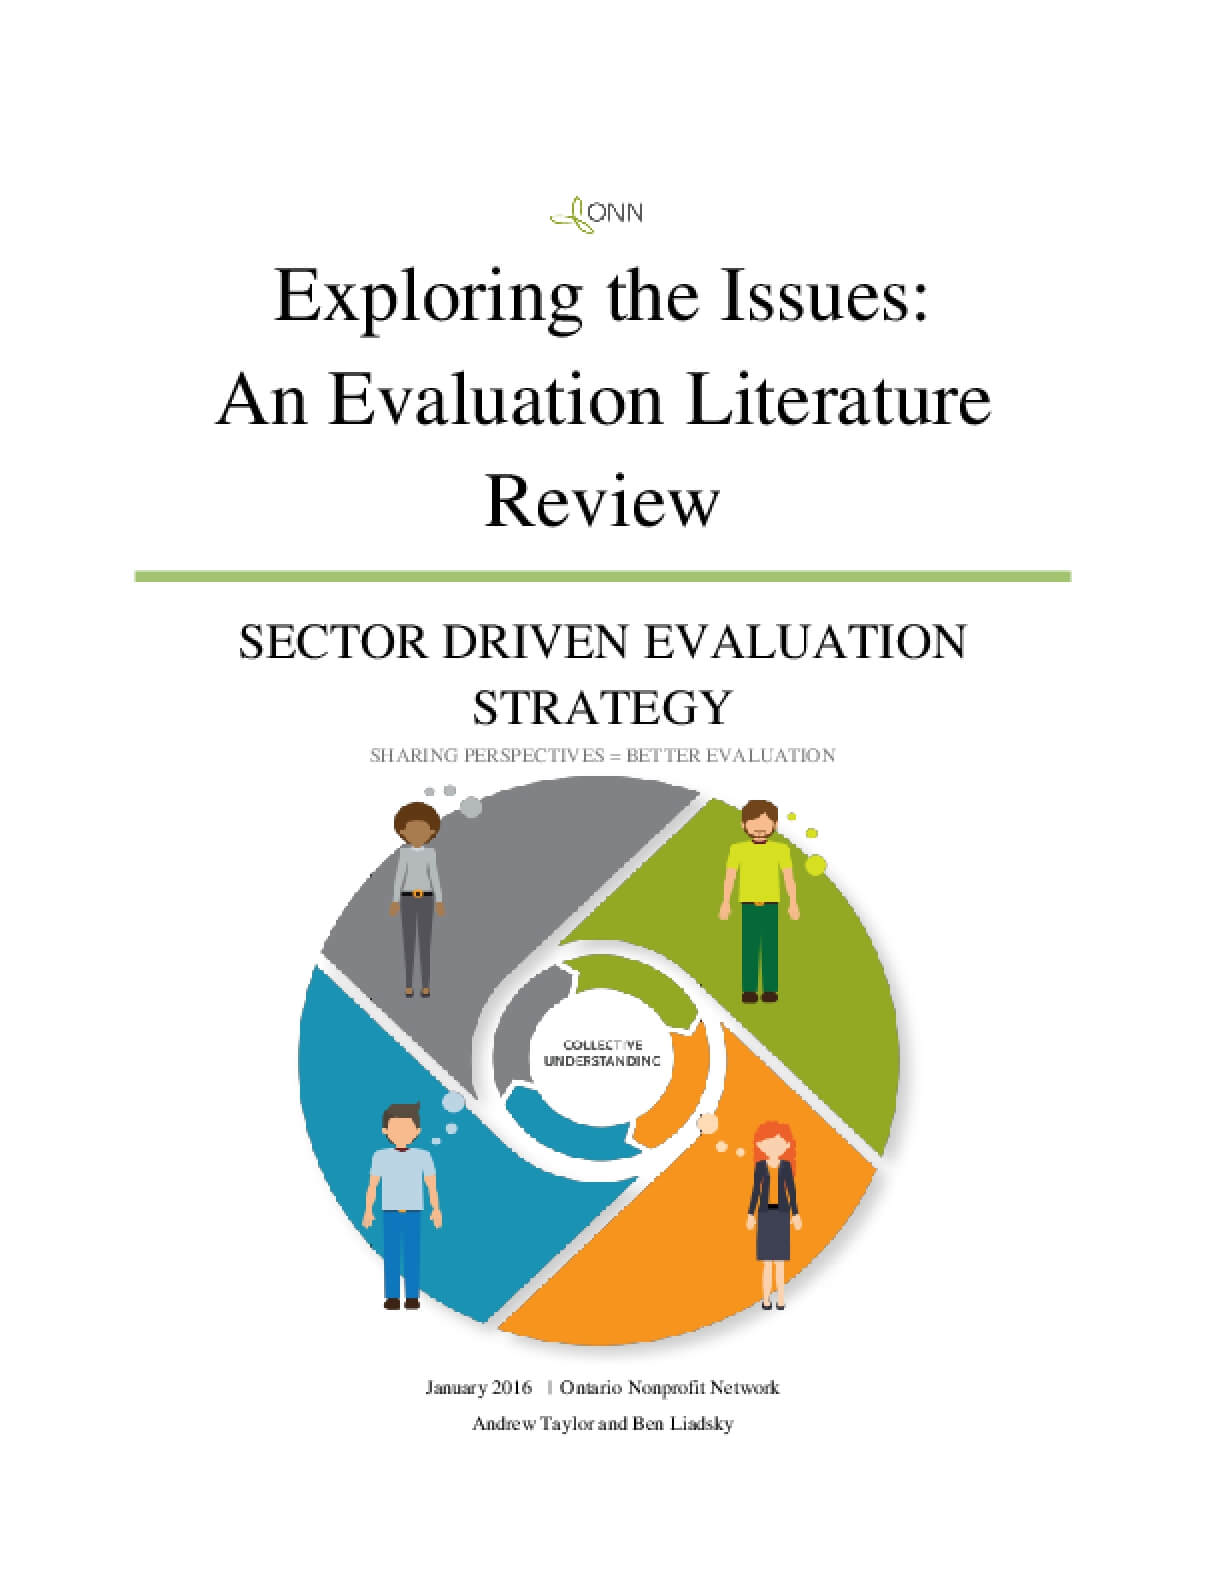 Exploring the Issues: An Evaluation Literature Review